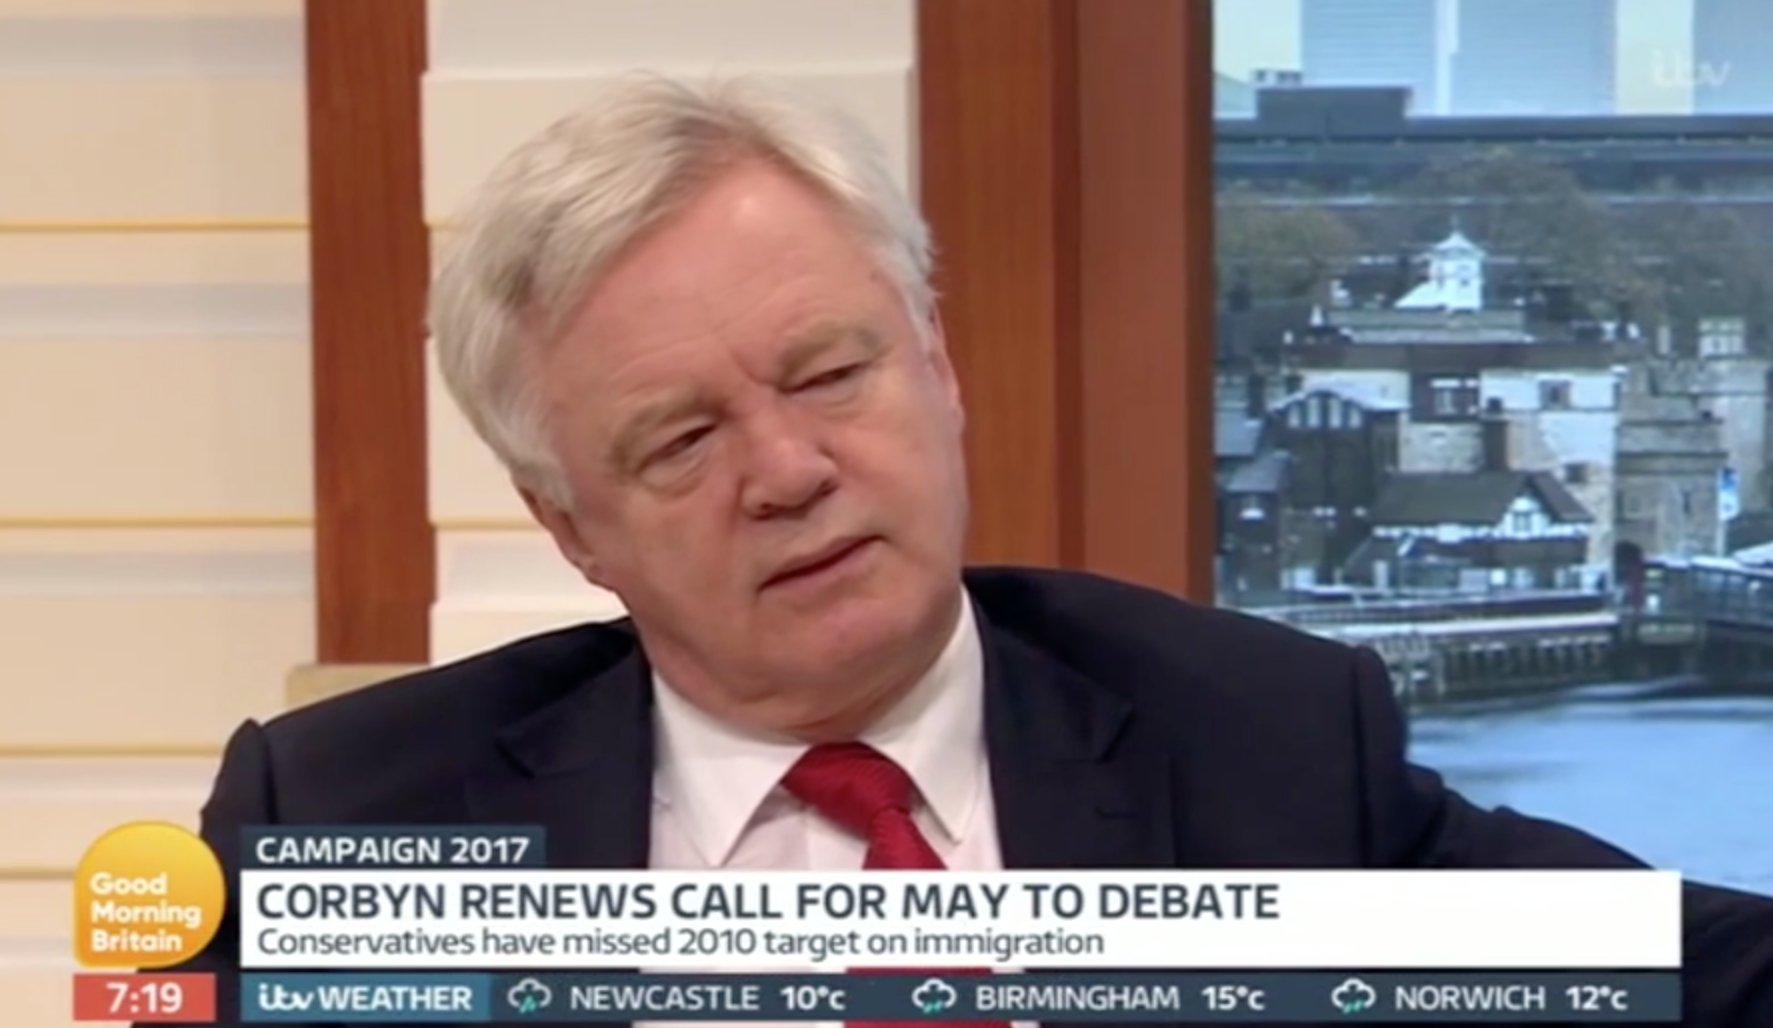 Tory David Davis squirms to justify 'dementia tax' live on TV https://t.co/xrCtoflK9W https://t.co/Wn8hj8grk5